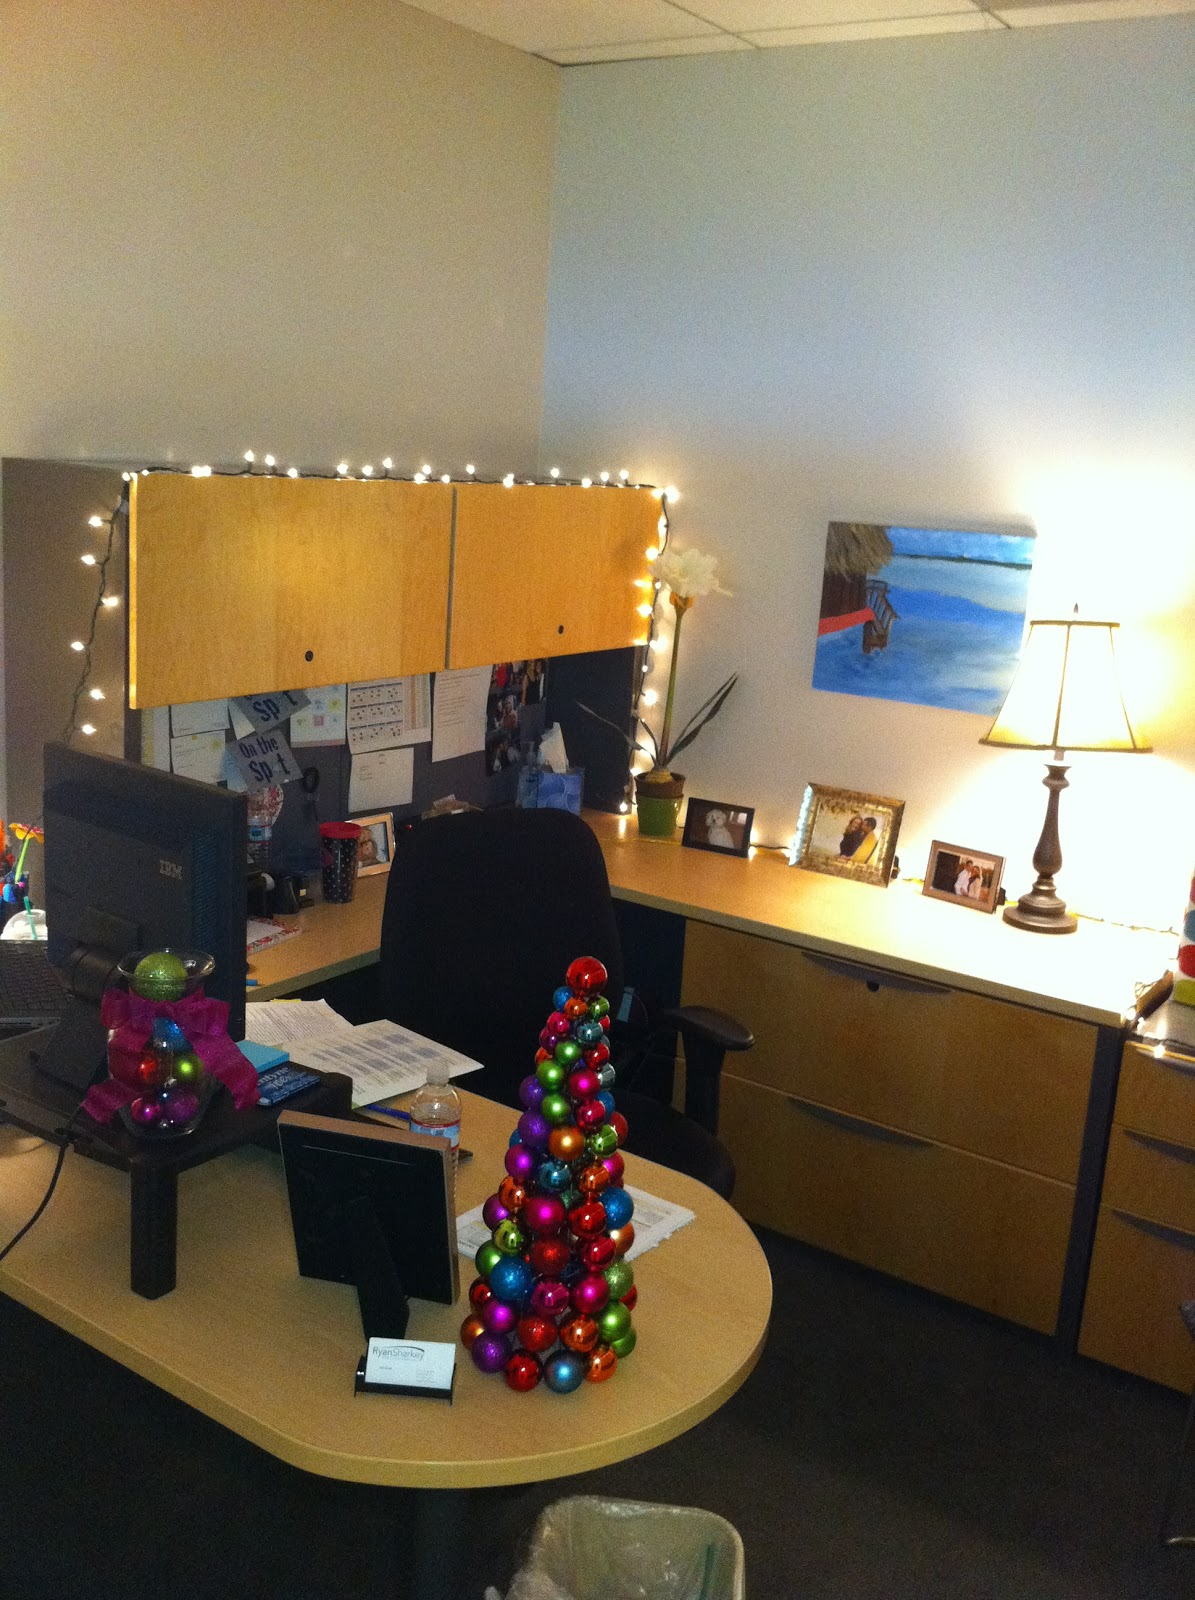 I Am Quirky: Yes, I Decorate My Office for Christmas